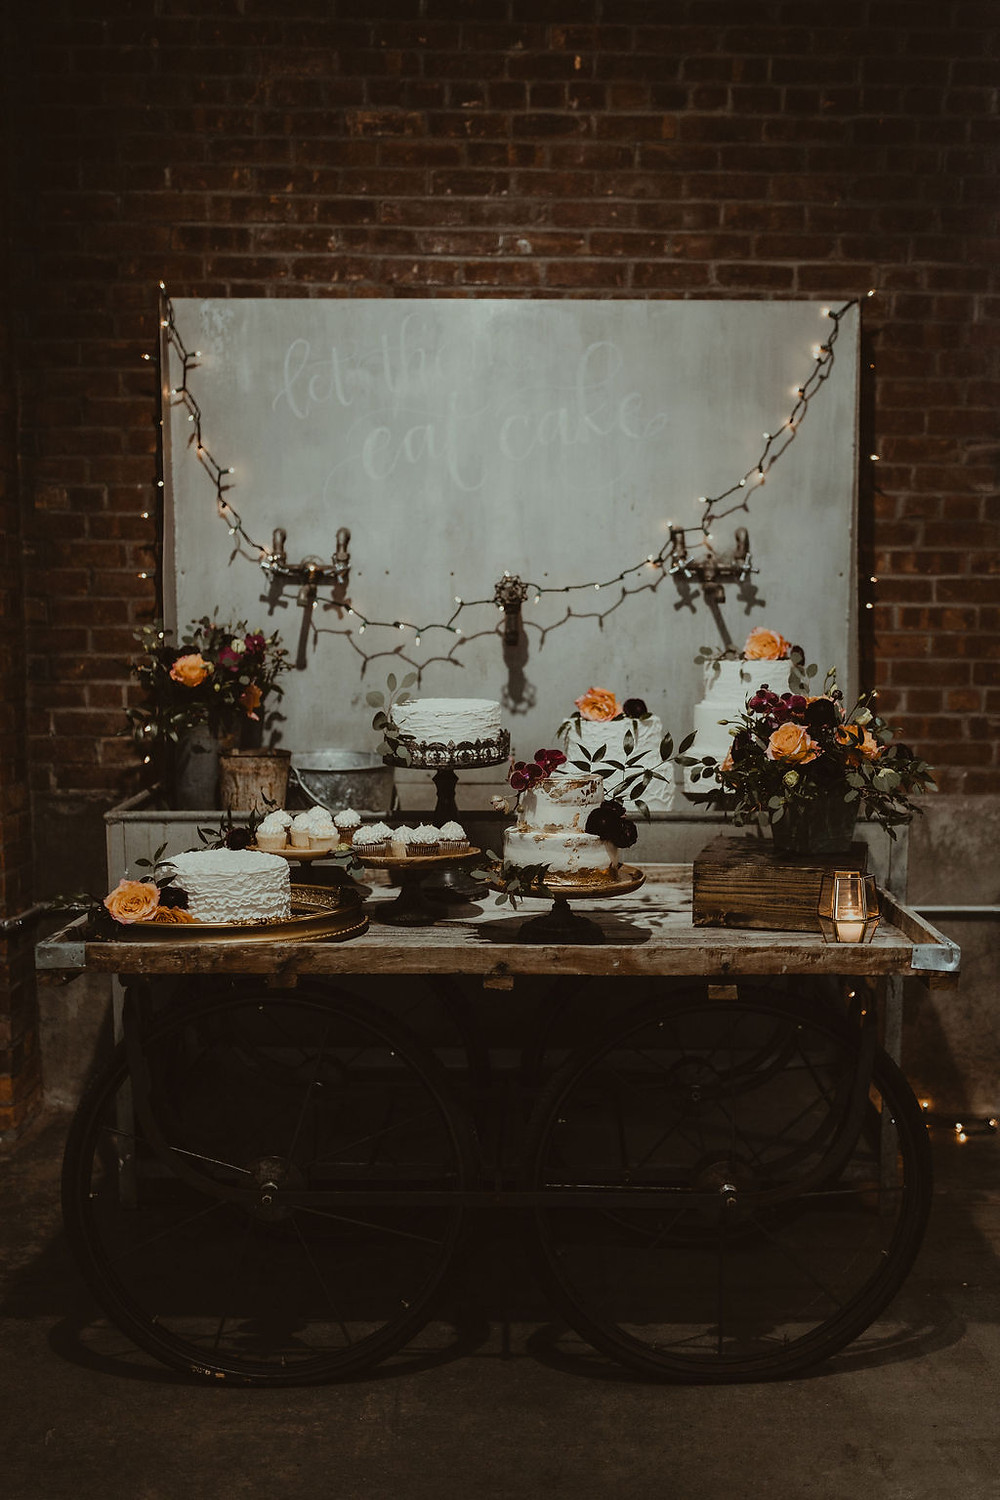 Industrial Wedding Cake Display: Industrial & Copper Styled Wedding Shoot at Smith's Market featured on Pretty Little Vintage Co.